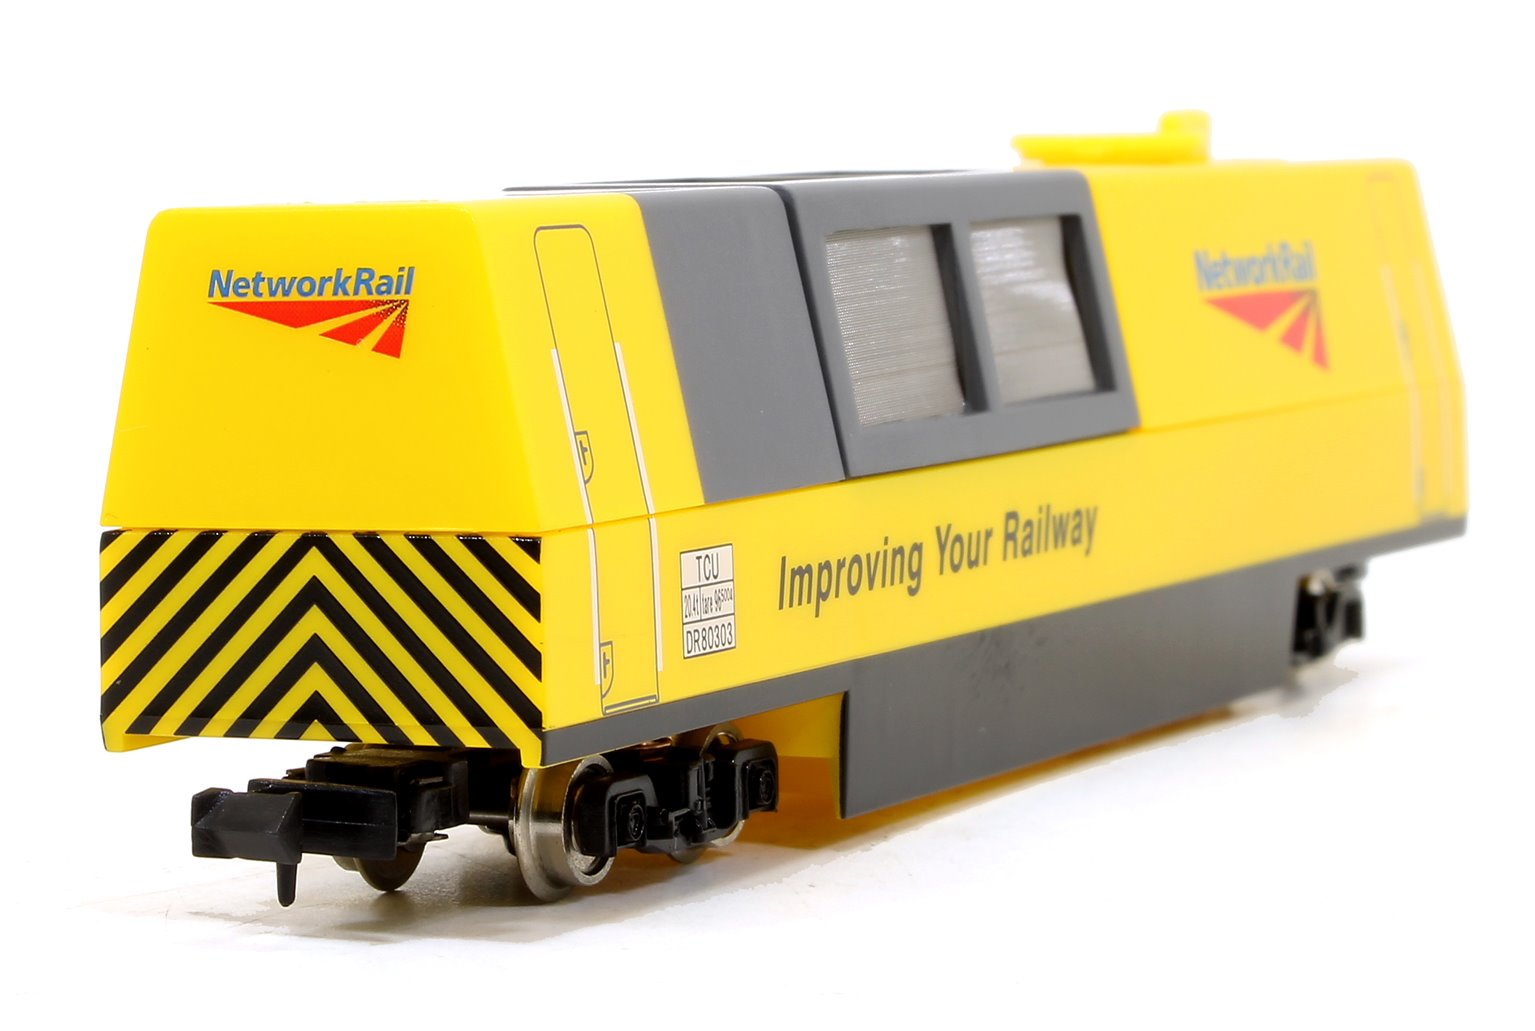 Track Cleaning Vehicle Network Rail Yellow